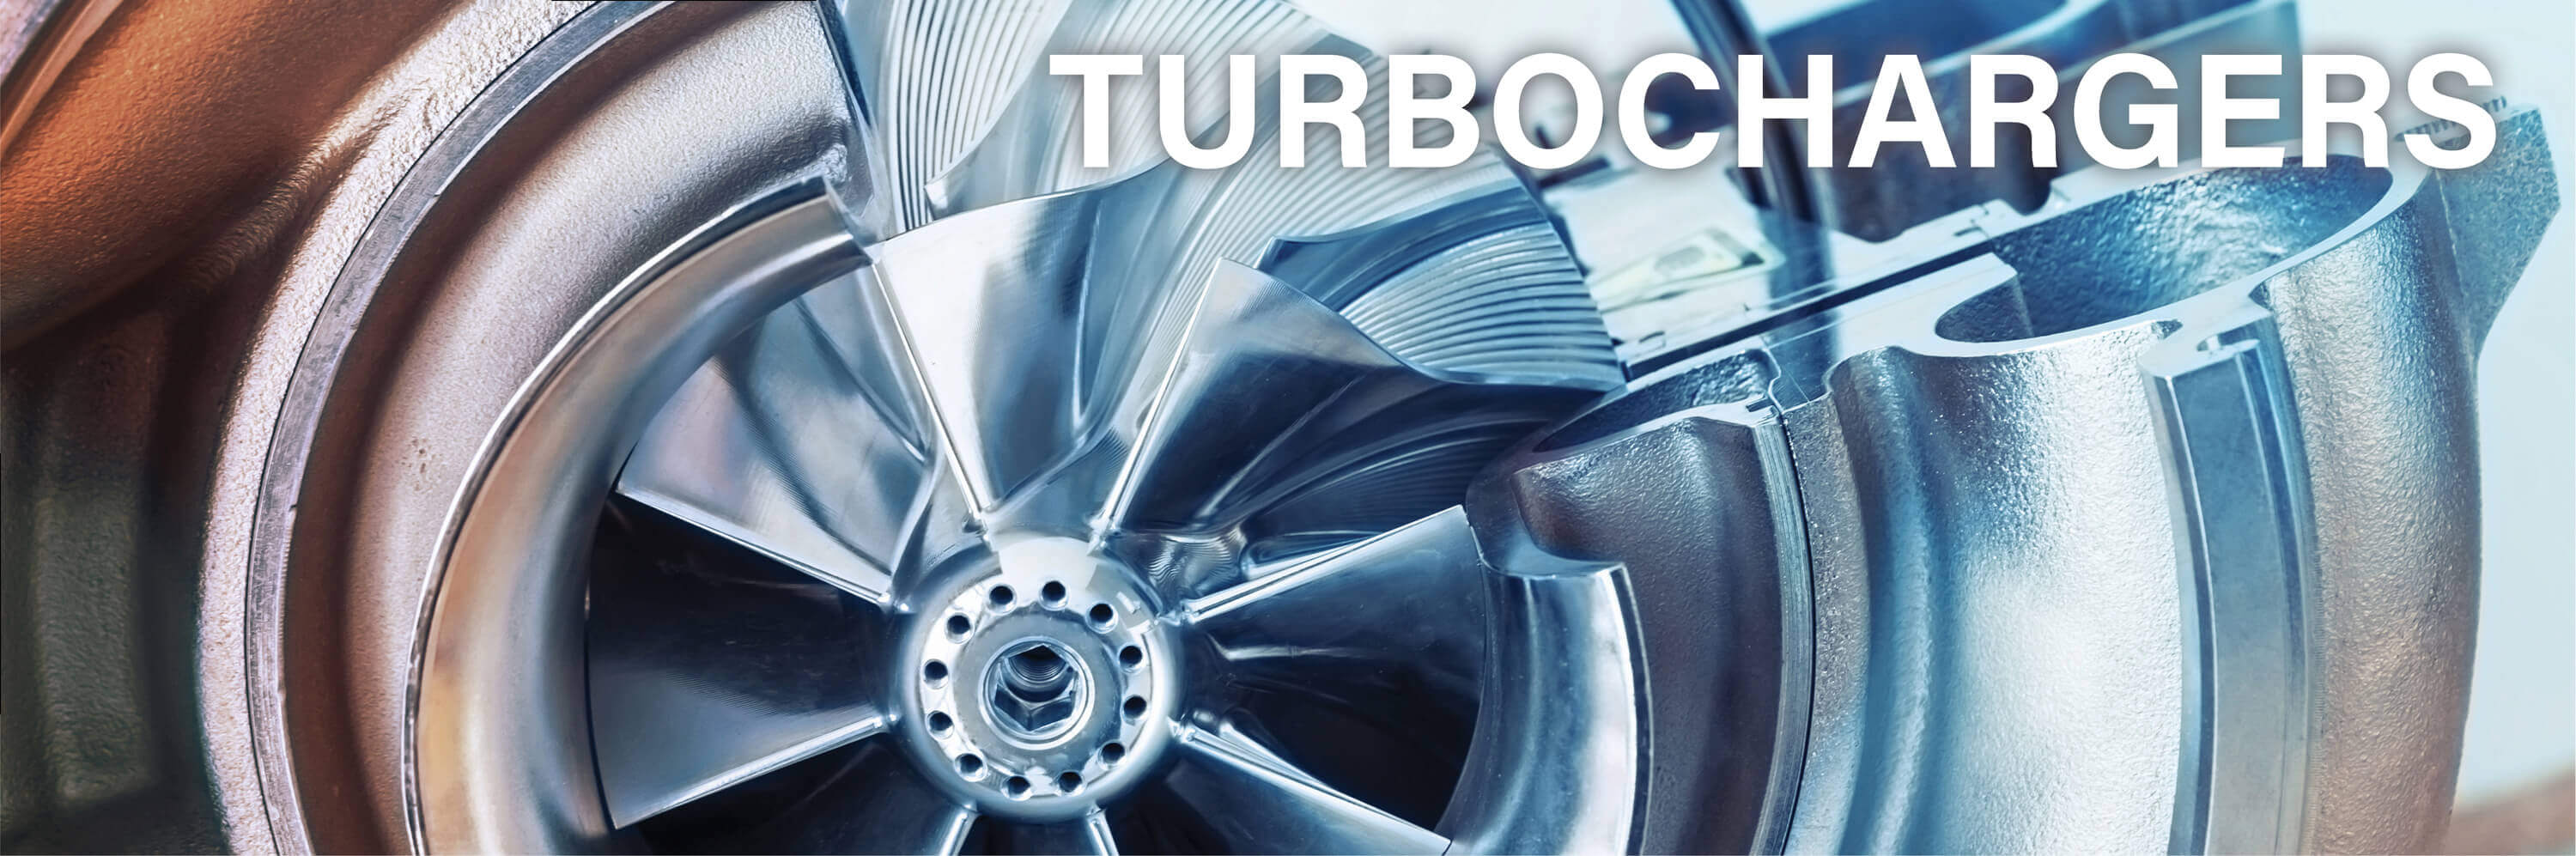 Turbocharger Hero Image banner